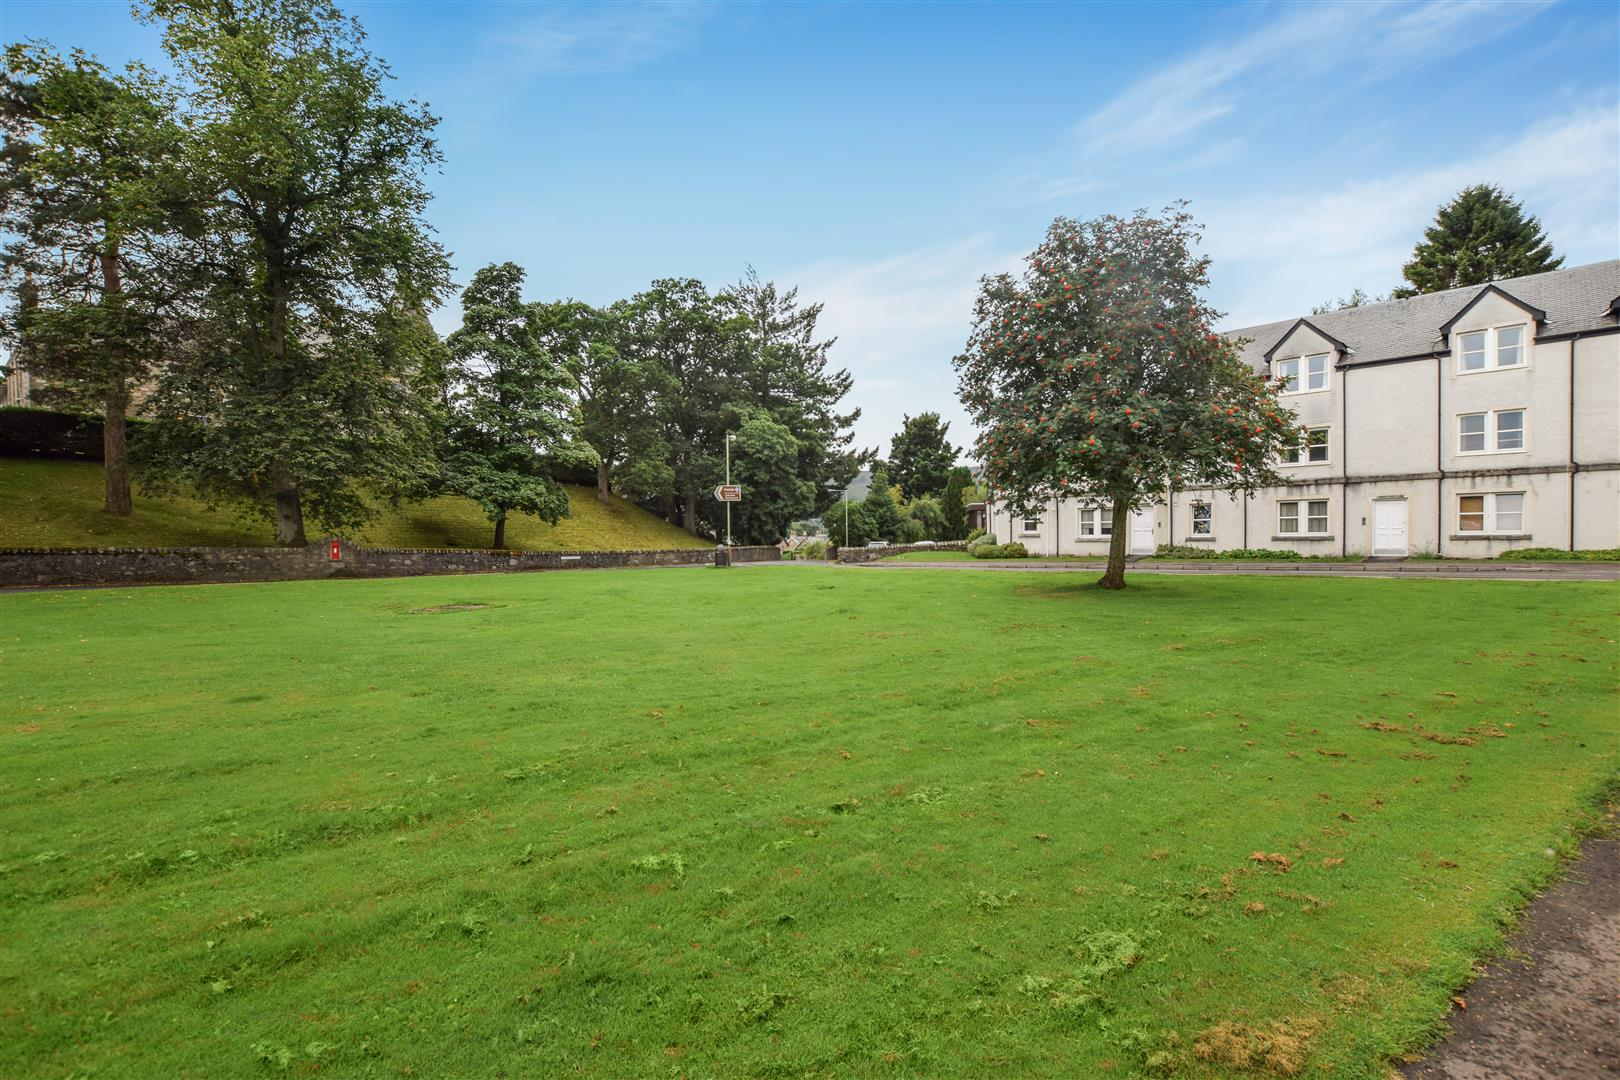 3, Darach Road, Pitlochry, Perthshire, PH16 5HR, UK